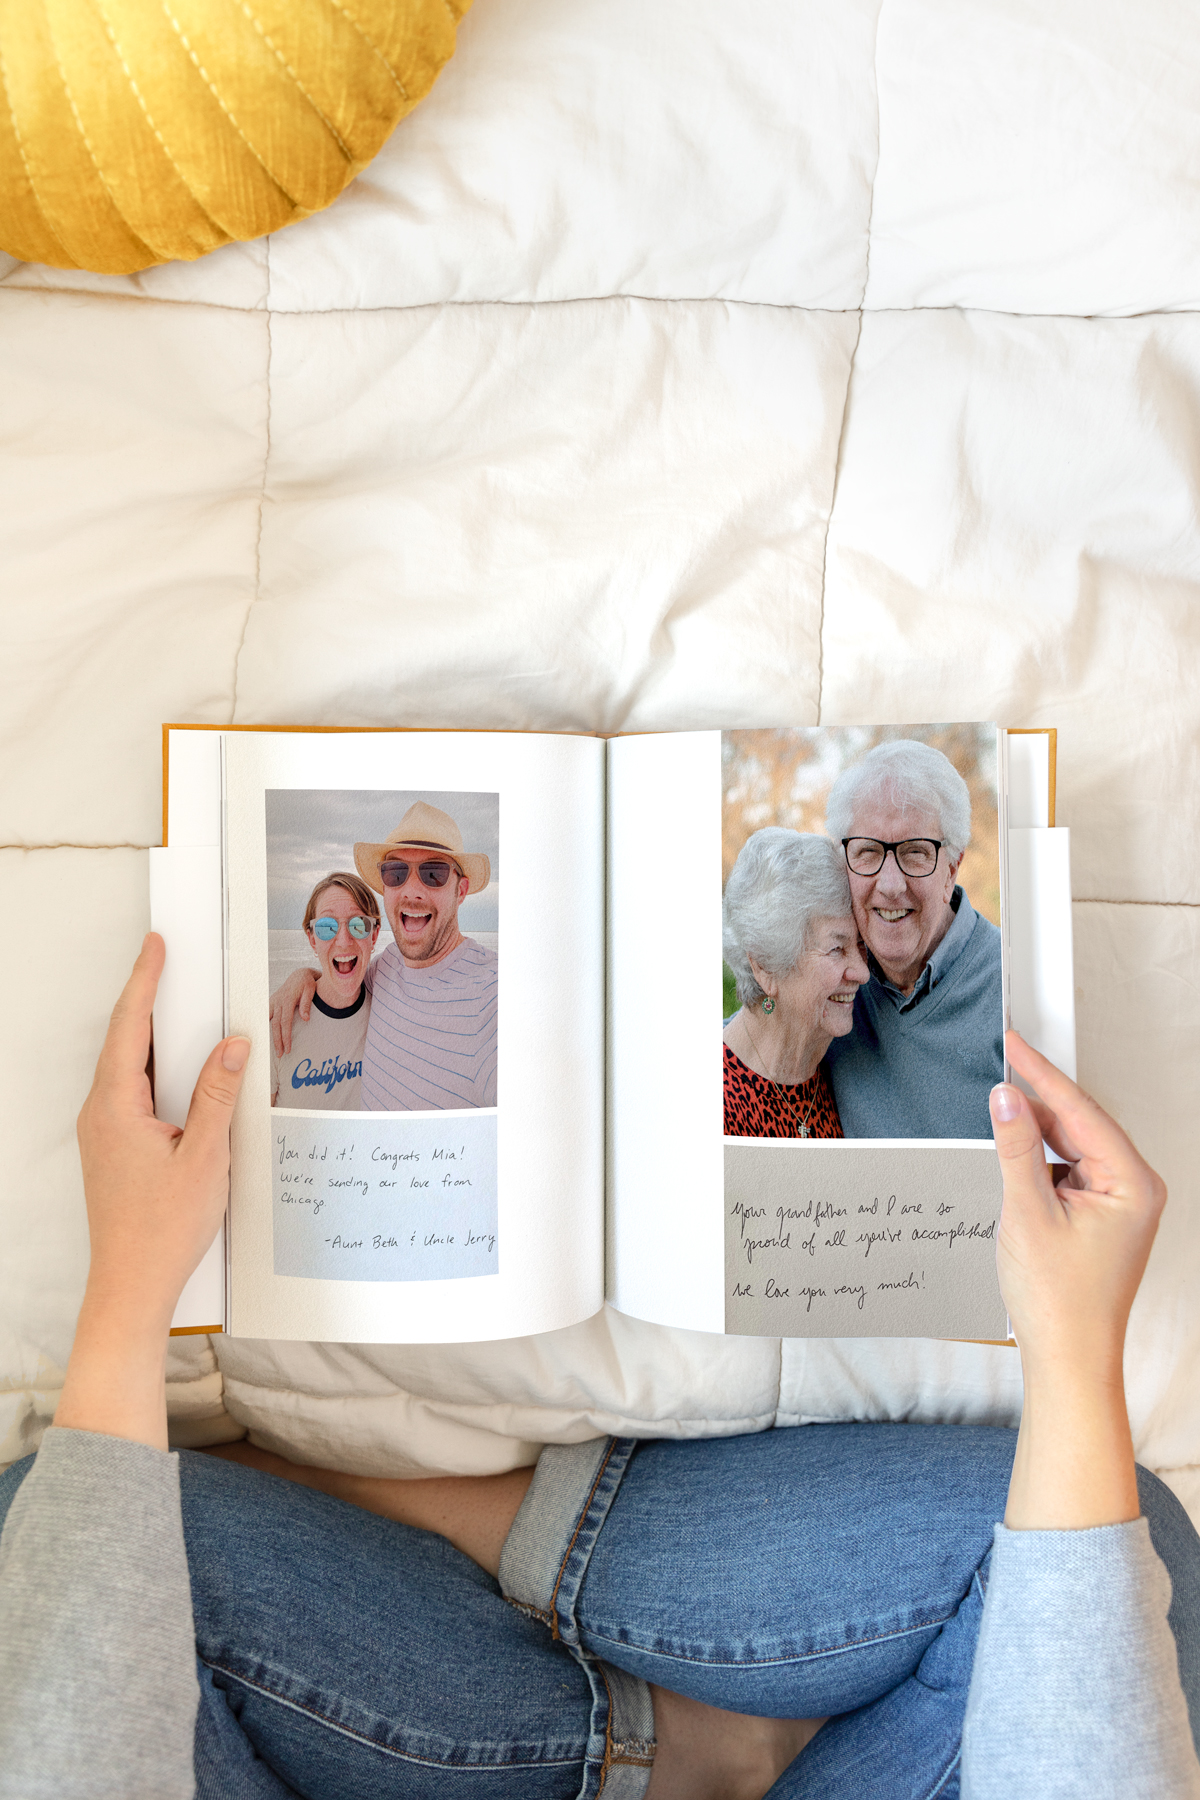 Artifact Uprising Hardcover Milestone Photo Book opened to photos and handwritten notes from family members